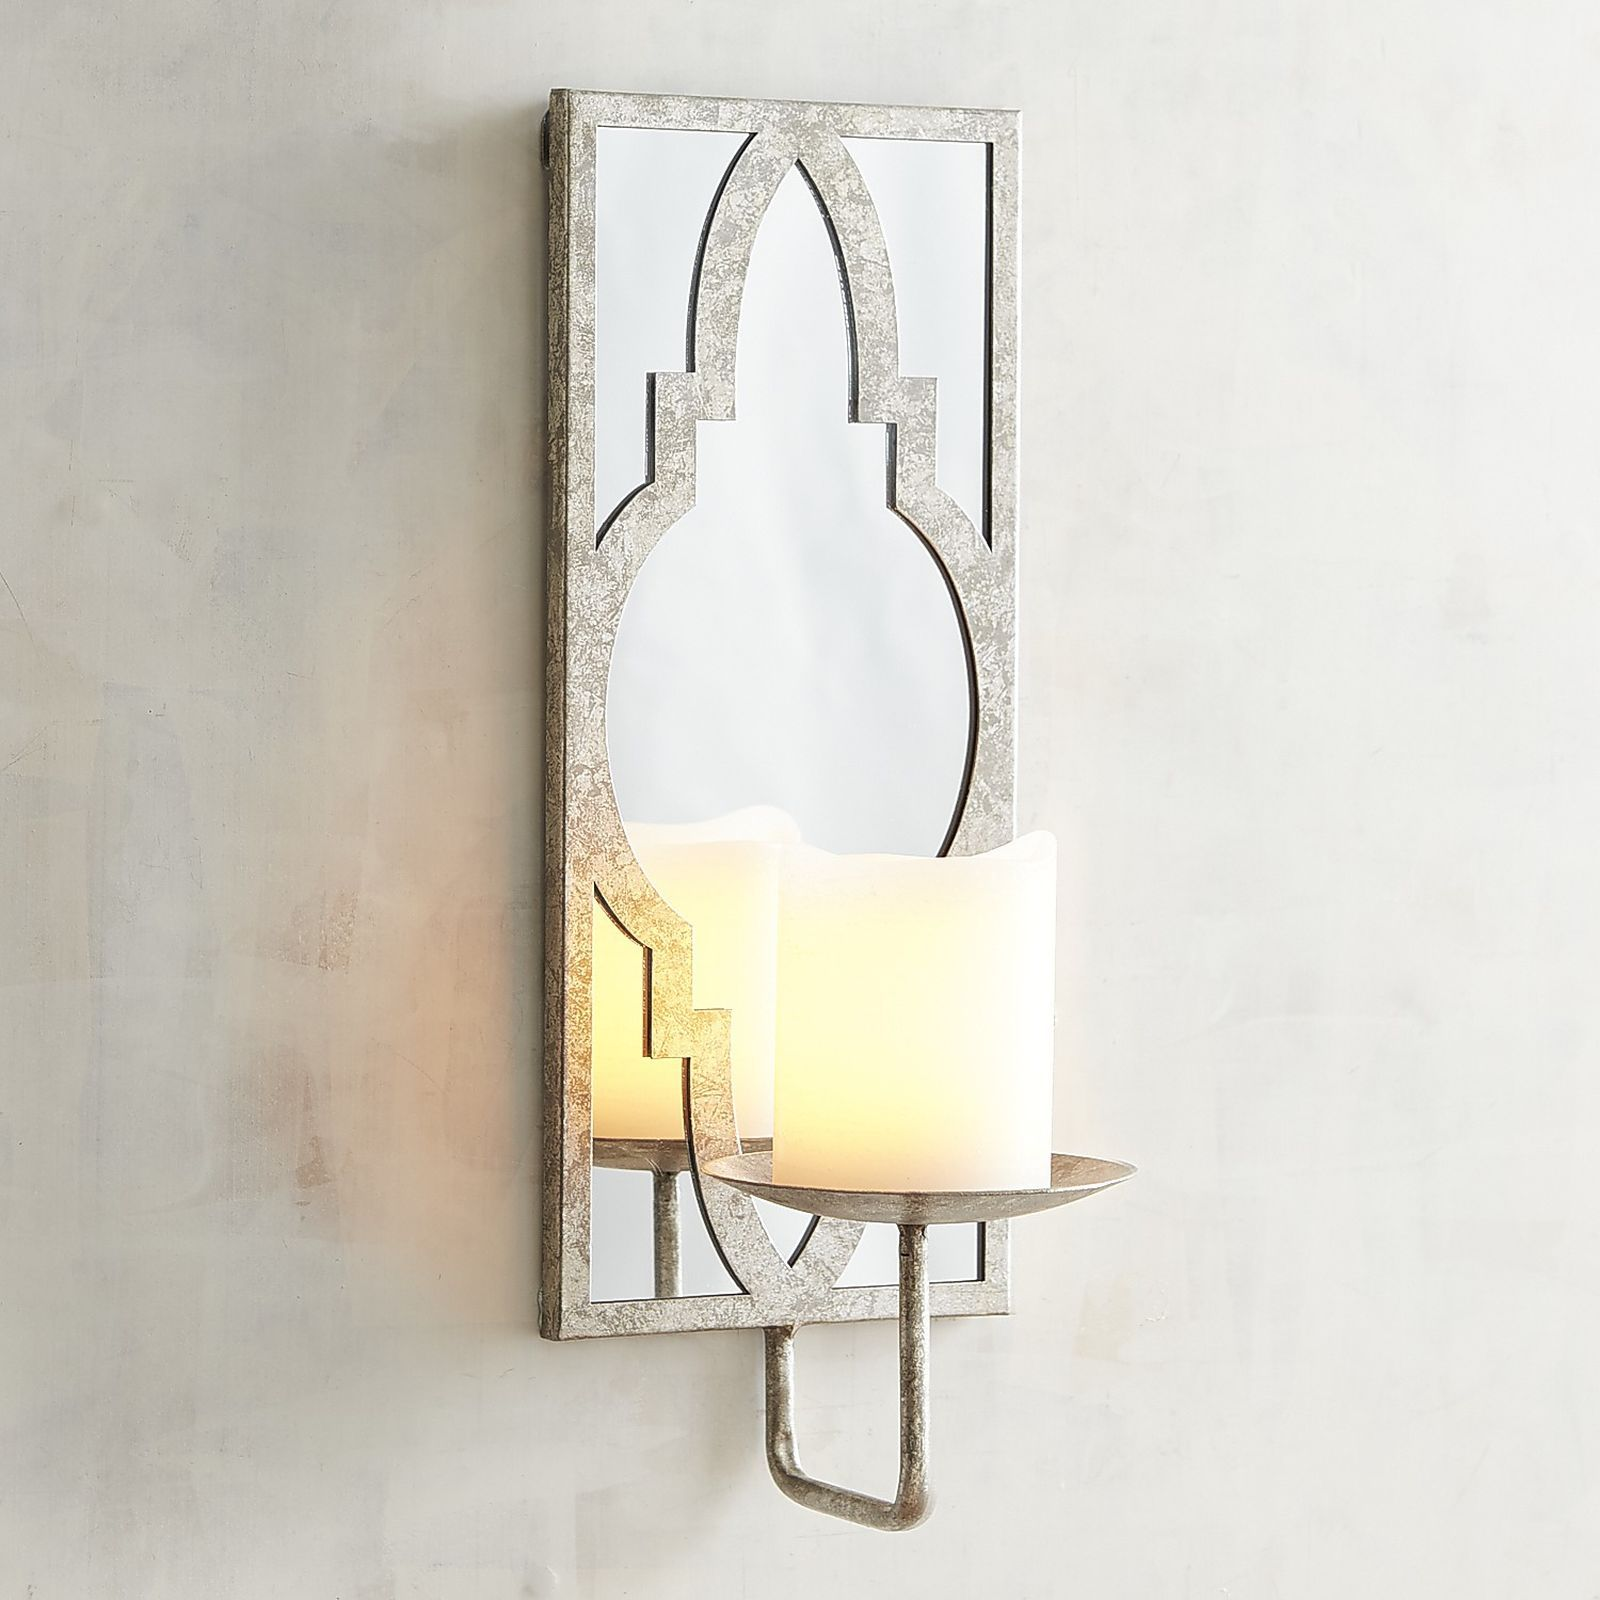 Silver Mirrored Candle Holder Wall Sconce | Wall candle ...